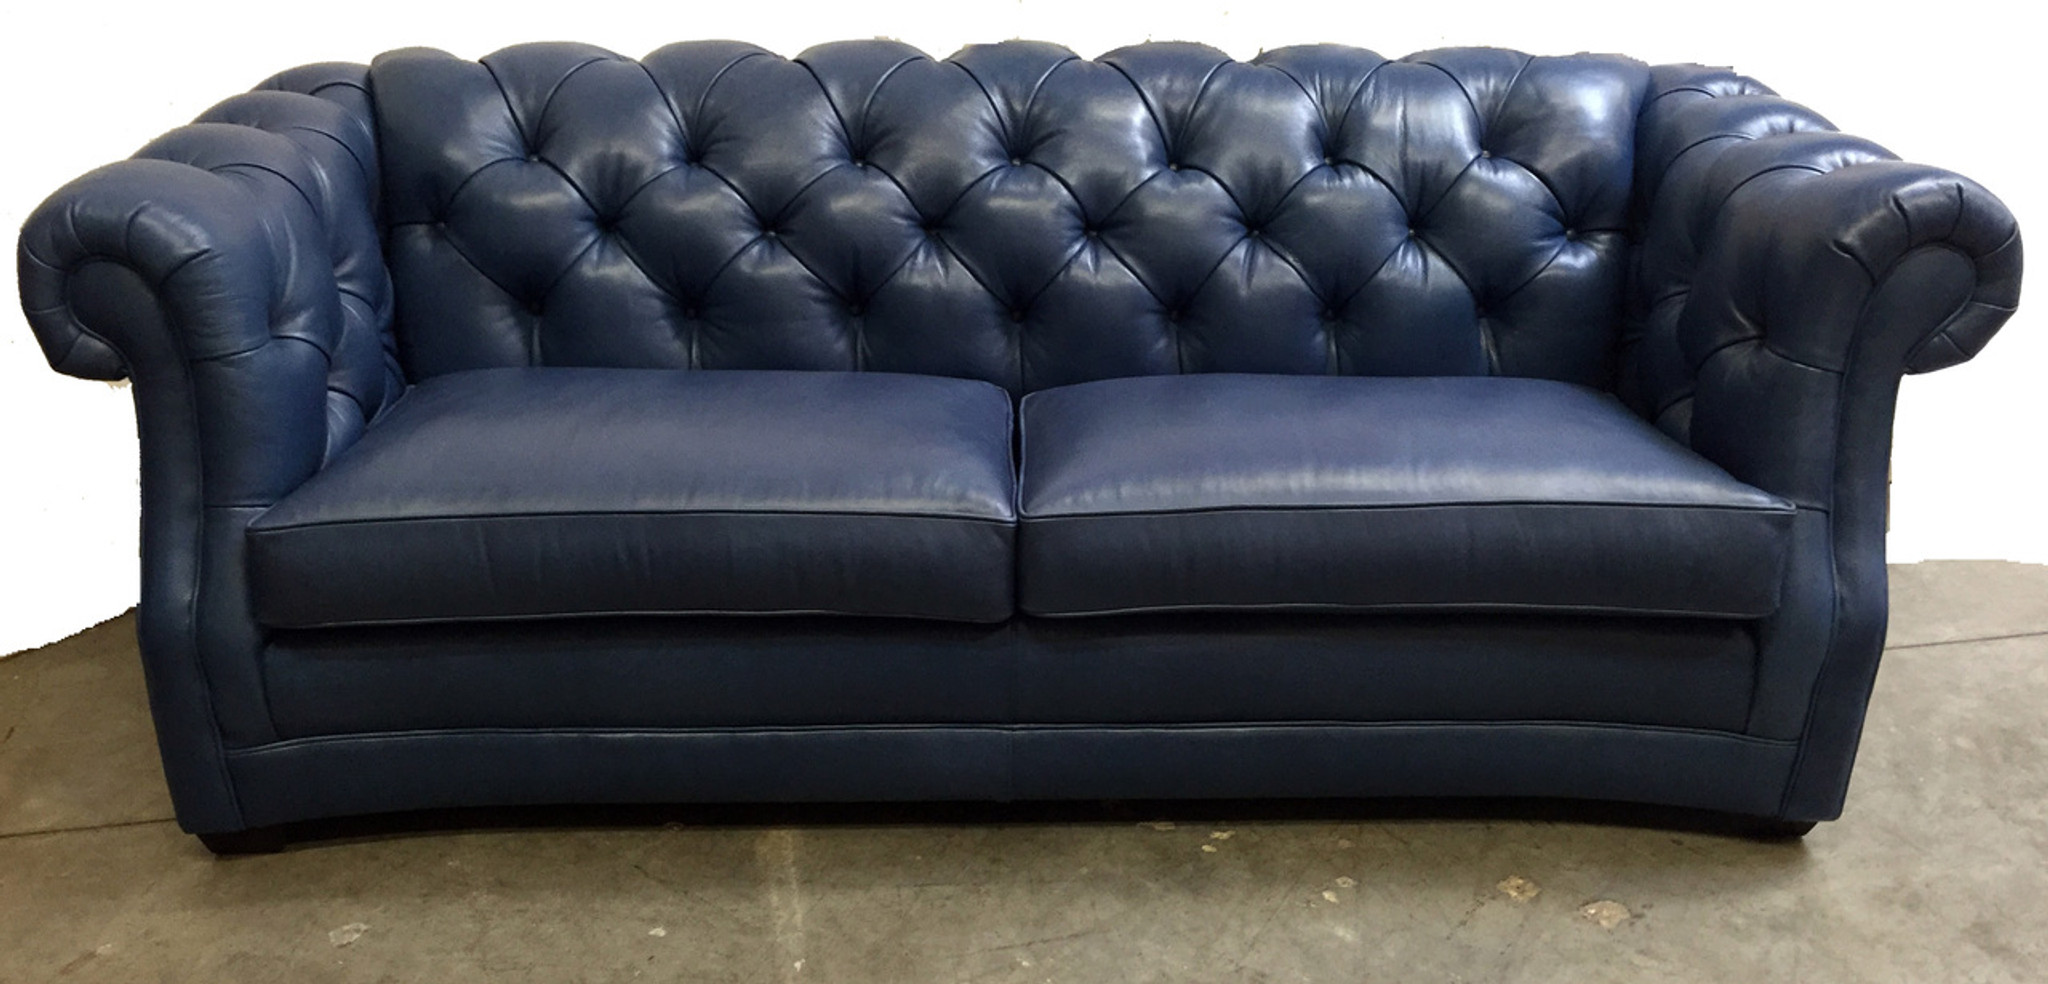 Chesterfield Tufted Leather Sofa Leather Special American